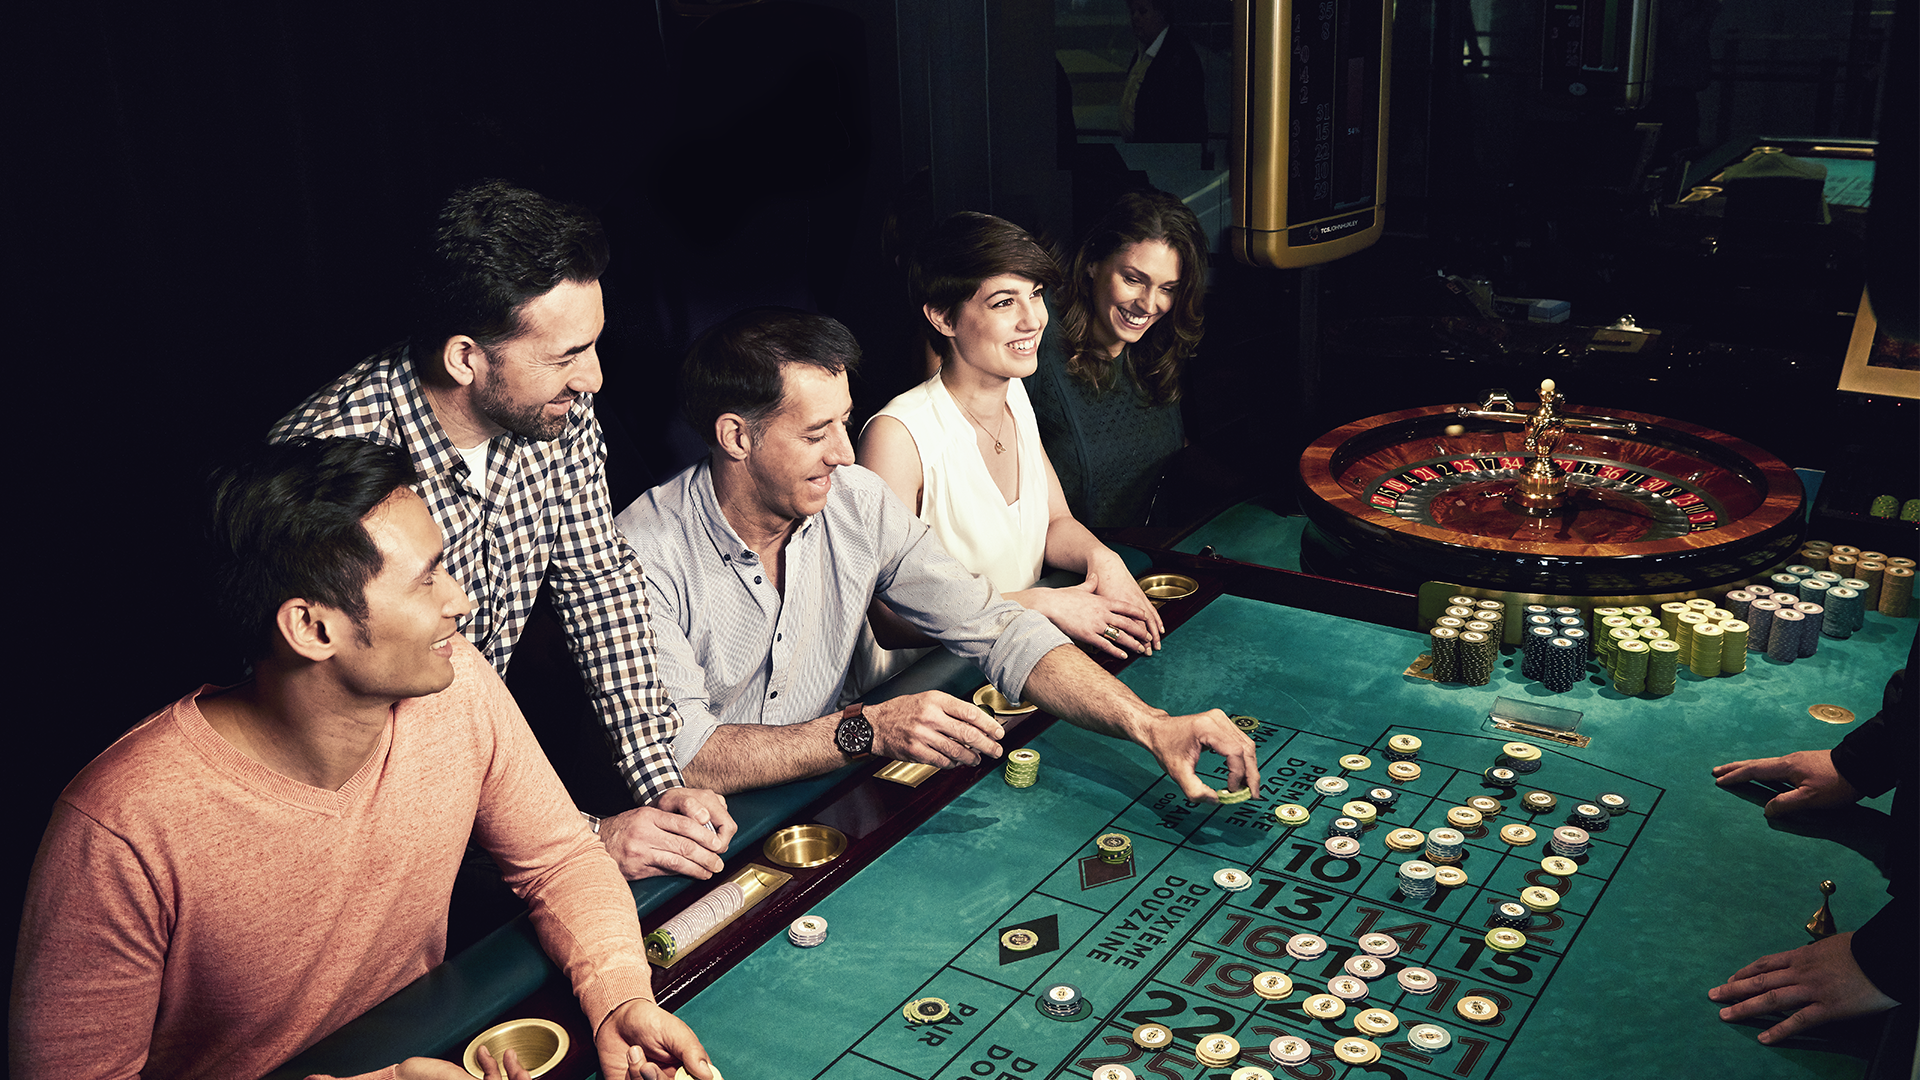 306-3060624_casino-roulette.png